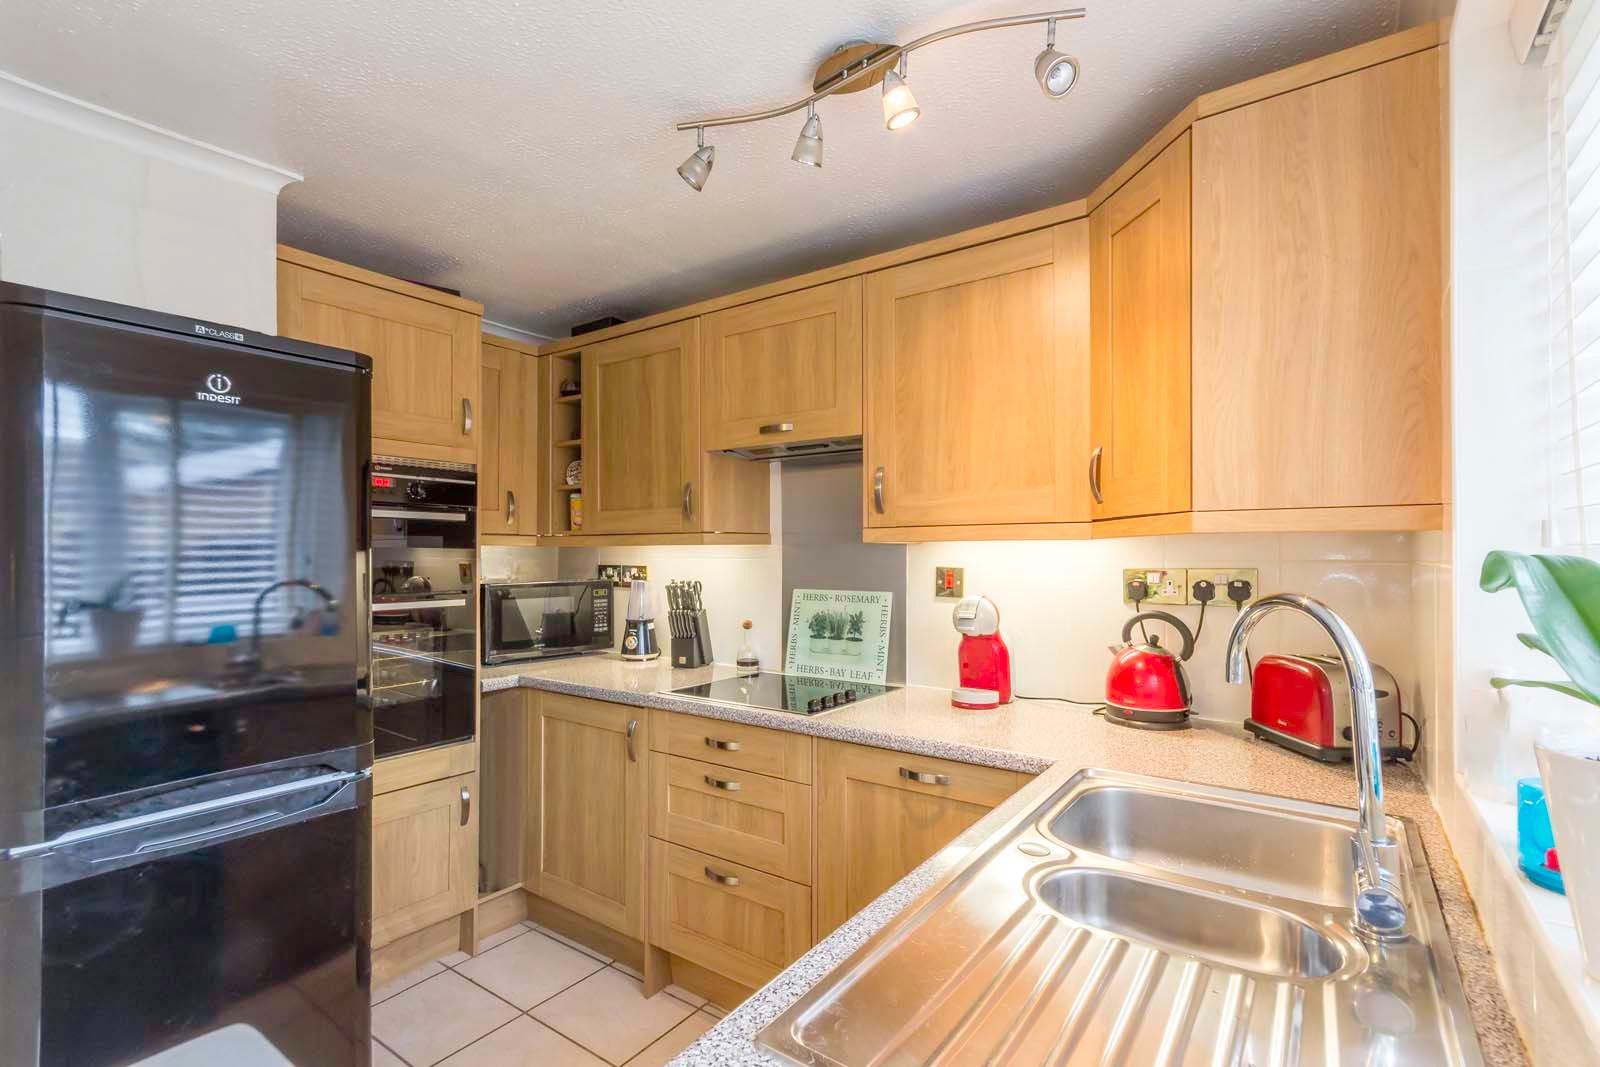 3 bed House for sale in East Preston - Kitchen (Property Image 3)